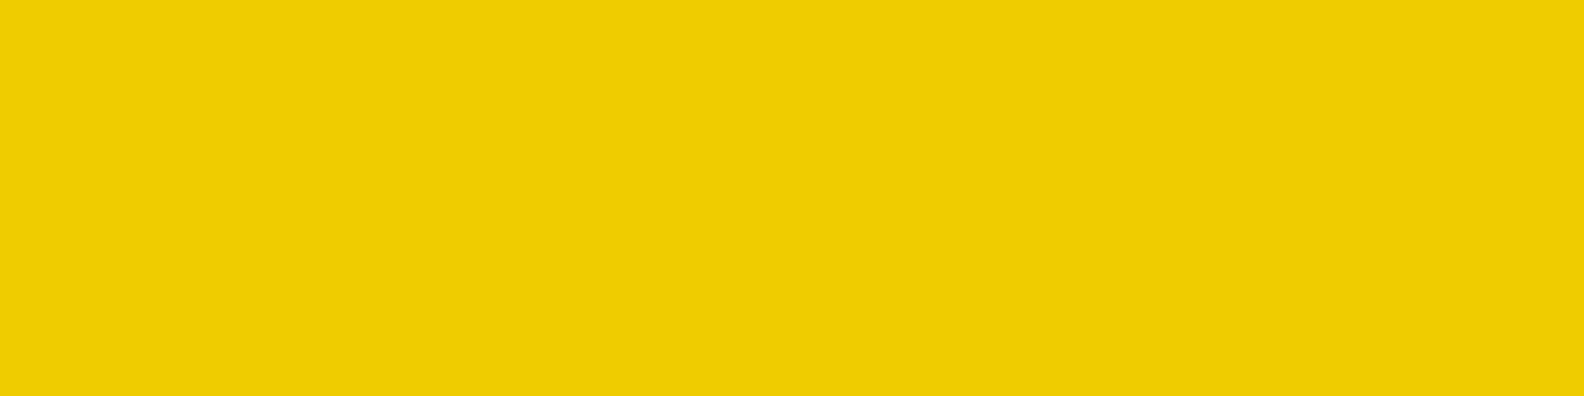 1584x396 Yellow Munsell Solid Color Background